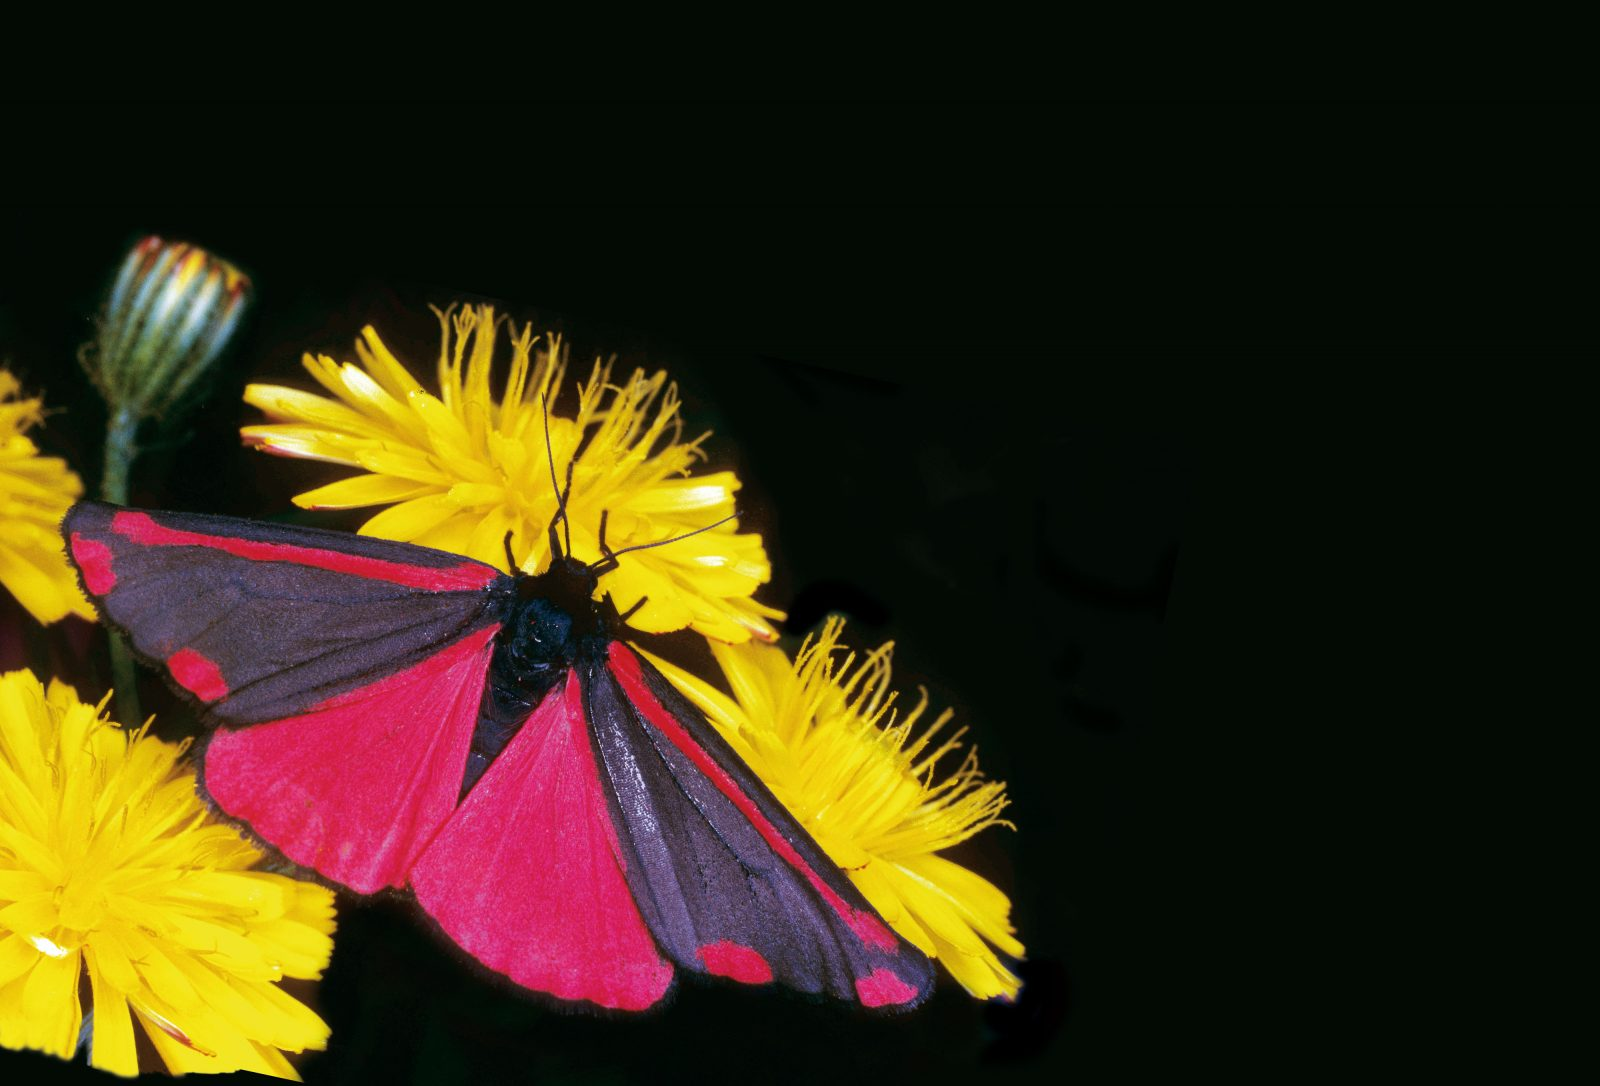 "New Zealand's economy is at the mercy of moths—as pollinators, and as agents of destruction. The flashy red Cinnabar moth, Tyria jacobaeae, was imported by the Cawthron Institute in 1929 to combat ragwort, an invasive weed that can poison livestock. Cinnabar moths munch through the flowers, limiting seed production and completely defoliating plants if larvae numbers are high. With the help of breeding programmes in the 1980s, this moth is now established nationwide. While the Cinnabar moth might be a farmer's friend, the native porina moth devastates pasture, and the common forest looper, Pseudocoremia suavis, also a native, moved from its natural host, the beech tree, to defoliate plantations of pine and Douglas fir. The guava moth caterpillar bores into fruit—citrus, feijoa, guava and macadamia. The light brown apple moth's leafroller caterpillar rolls and binds leaves with silk on 265 plant species, causing hundreds of millions of dollars in damage to foliage and fruit in orchards and plantations. And Aucklanders will recall with consternation the aerial spraying campaign of 2006 to rid the western suburbs of painted apple moth that happily defoliated 92 plant species. For decades, scientists have engaged in a battle of wits with such invasive species. One way to beat them, it has been found, is to employ the moths' own carnal urges. While unimaginable gluttony is the prerogative of the caterpillar phase, for a winged adult moth, foremost on the agenda is sex. Male moths are easy to seduce: in order to breed, the females release a pheromone plume, an assortment of acetates and aldehydes that advertise her location. The molecules alight on the male's feathery antennae and nerve impulses spark the ganglions in the brain. The ratio of chemicals is specific to the species, a factor biological control scientists have turned to their advantage in controlling native and exotic pest species such as leafrollers and codling moths. Since the 1800s, orchardists have been able to disperse synthetic hormones as ""lure and kill"" systems, or simply saturate the air, creating a pheromone noise termed 'mating disruption' so that the male moths can't possibly locate the females. These techniques, along with introduced parasitoids, sterile insect release and selective insecticides are all part of a new bag of chemical tricks with which scientists can protect New Zealand's environment and economy from the ravages of introduced predators."